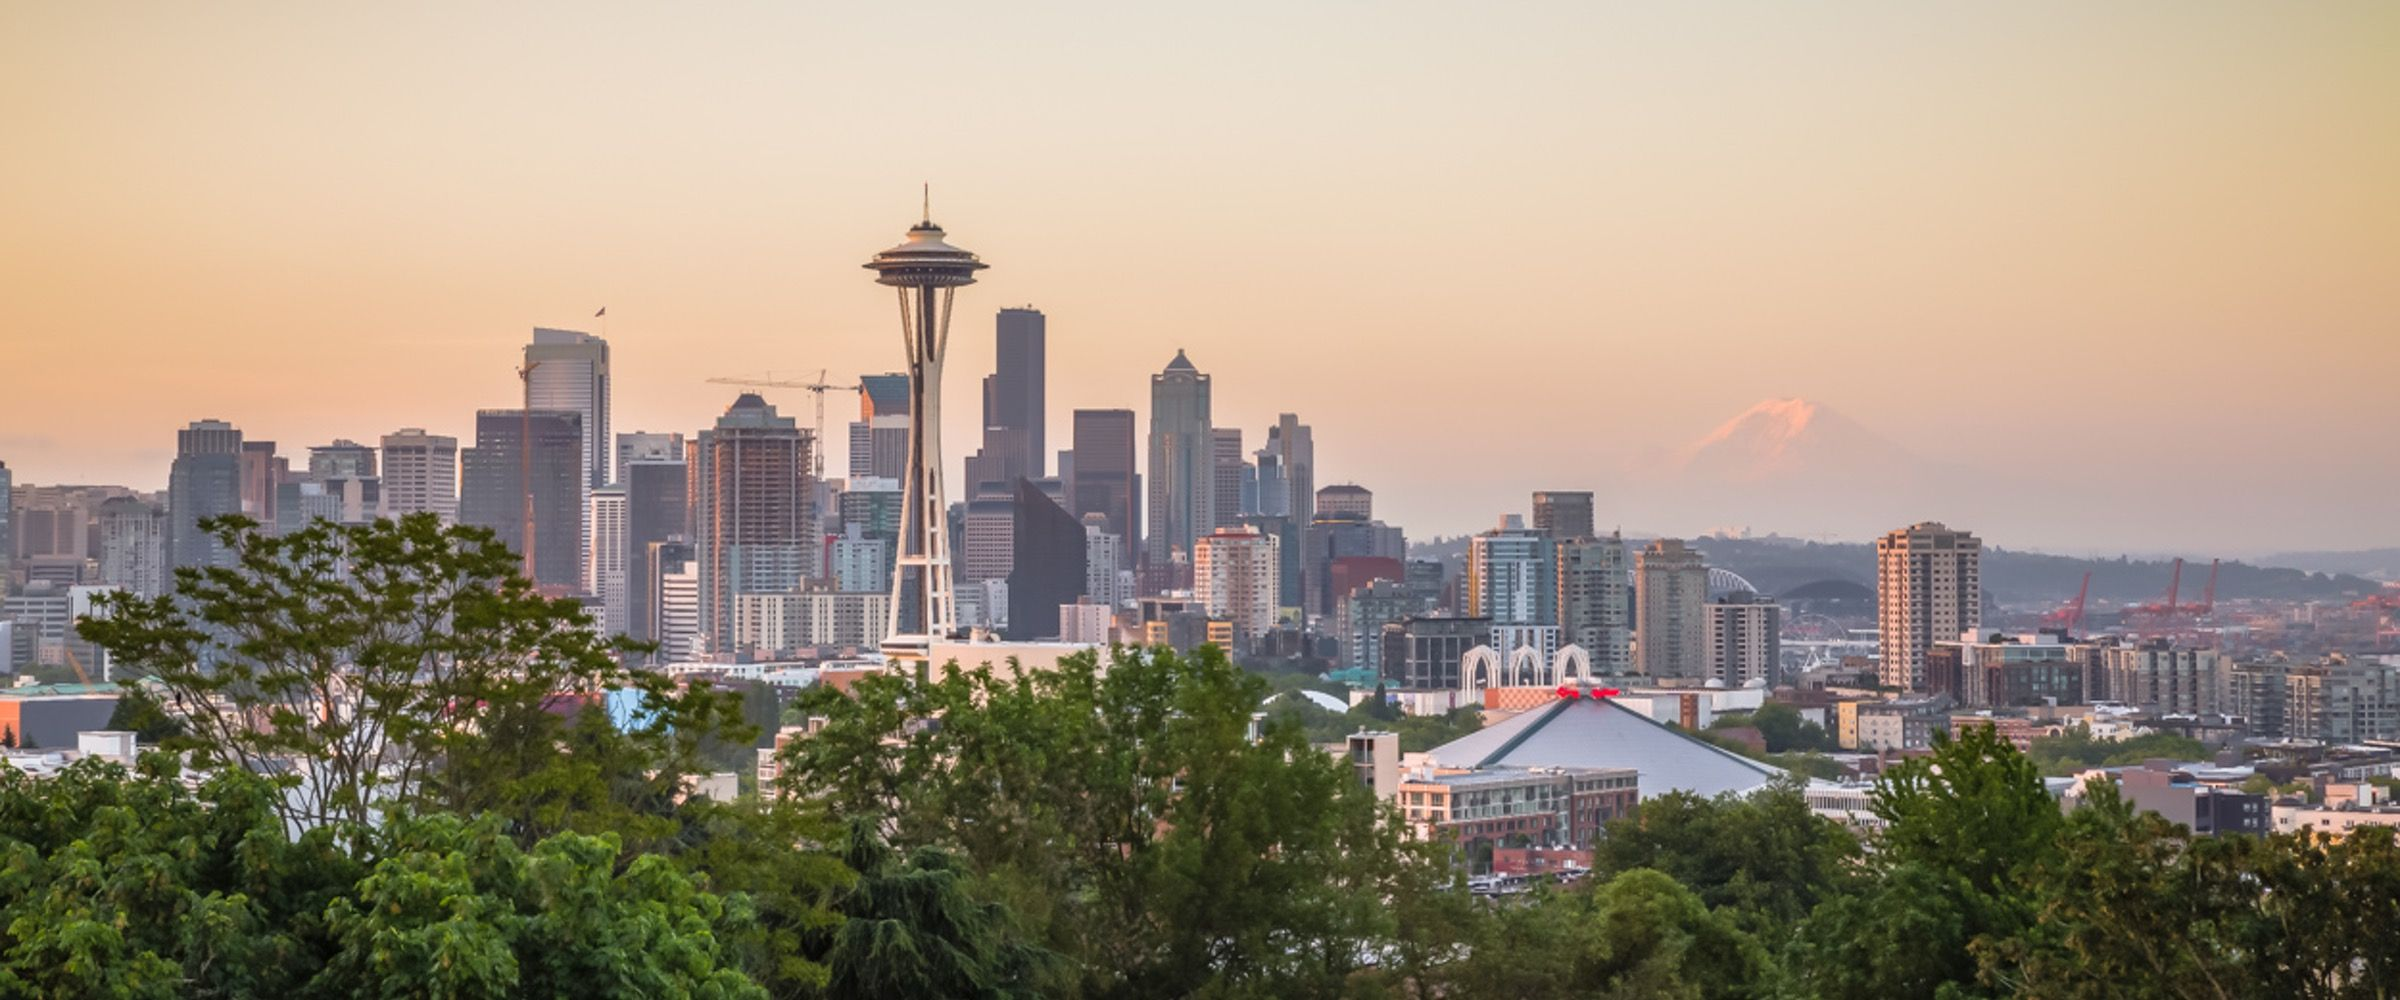 If you're looking for a three-day getaway in the United States, you cannot go wrong with the Emerald City in the Evergreen State: Seattle, Washington.